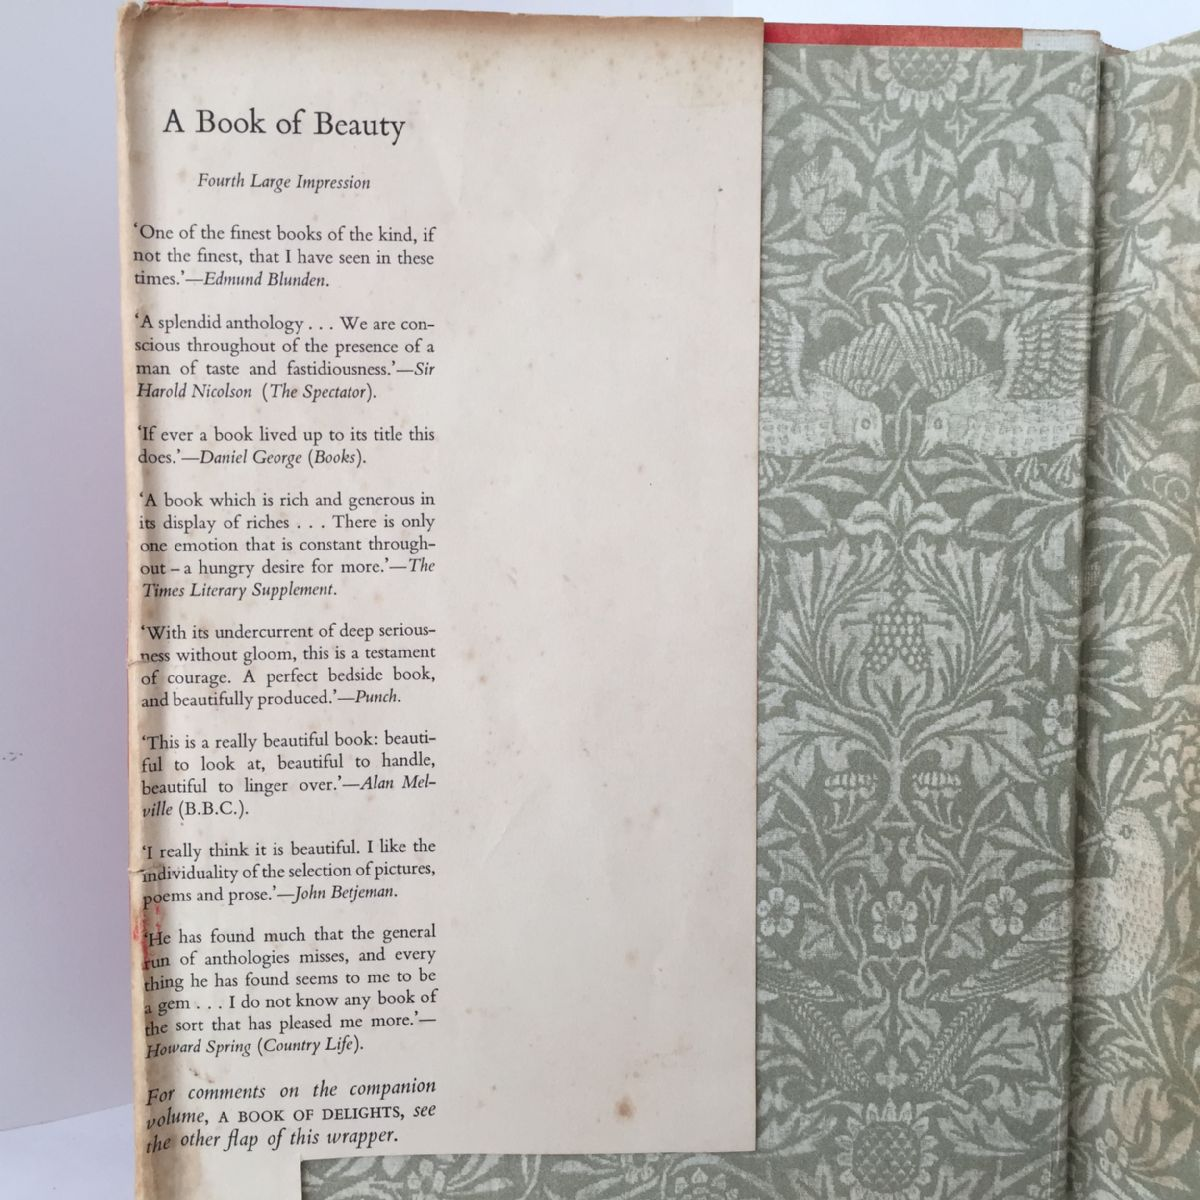 A Book of Beauty